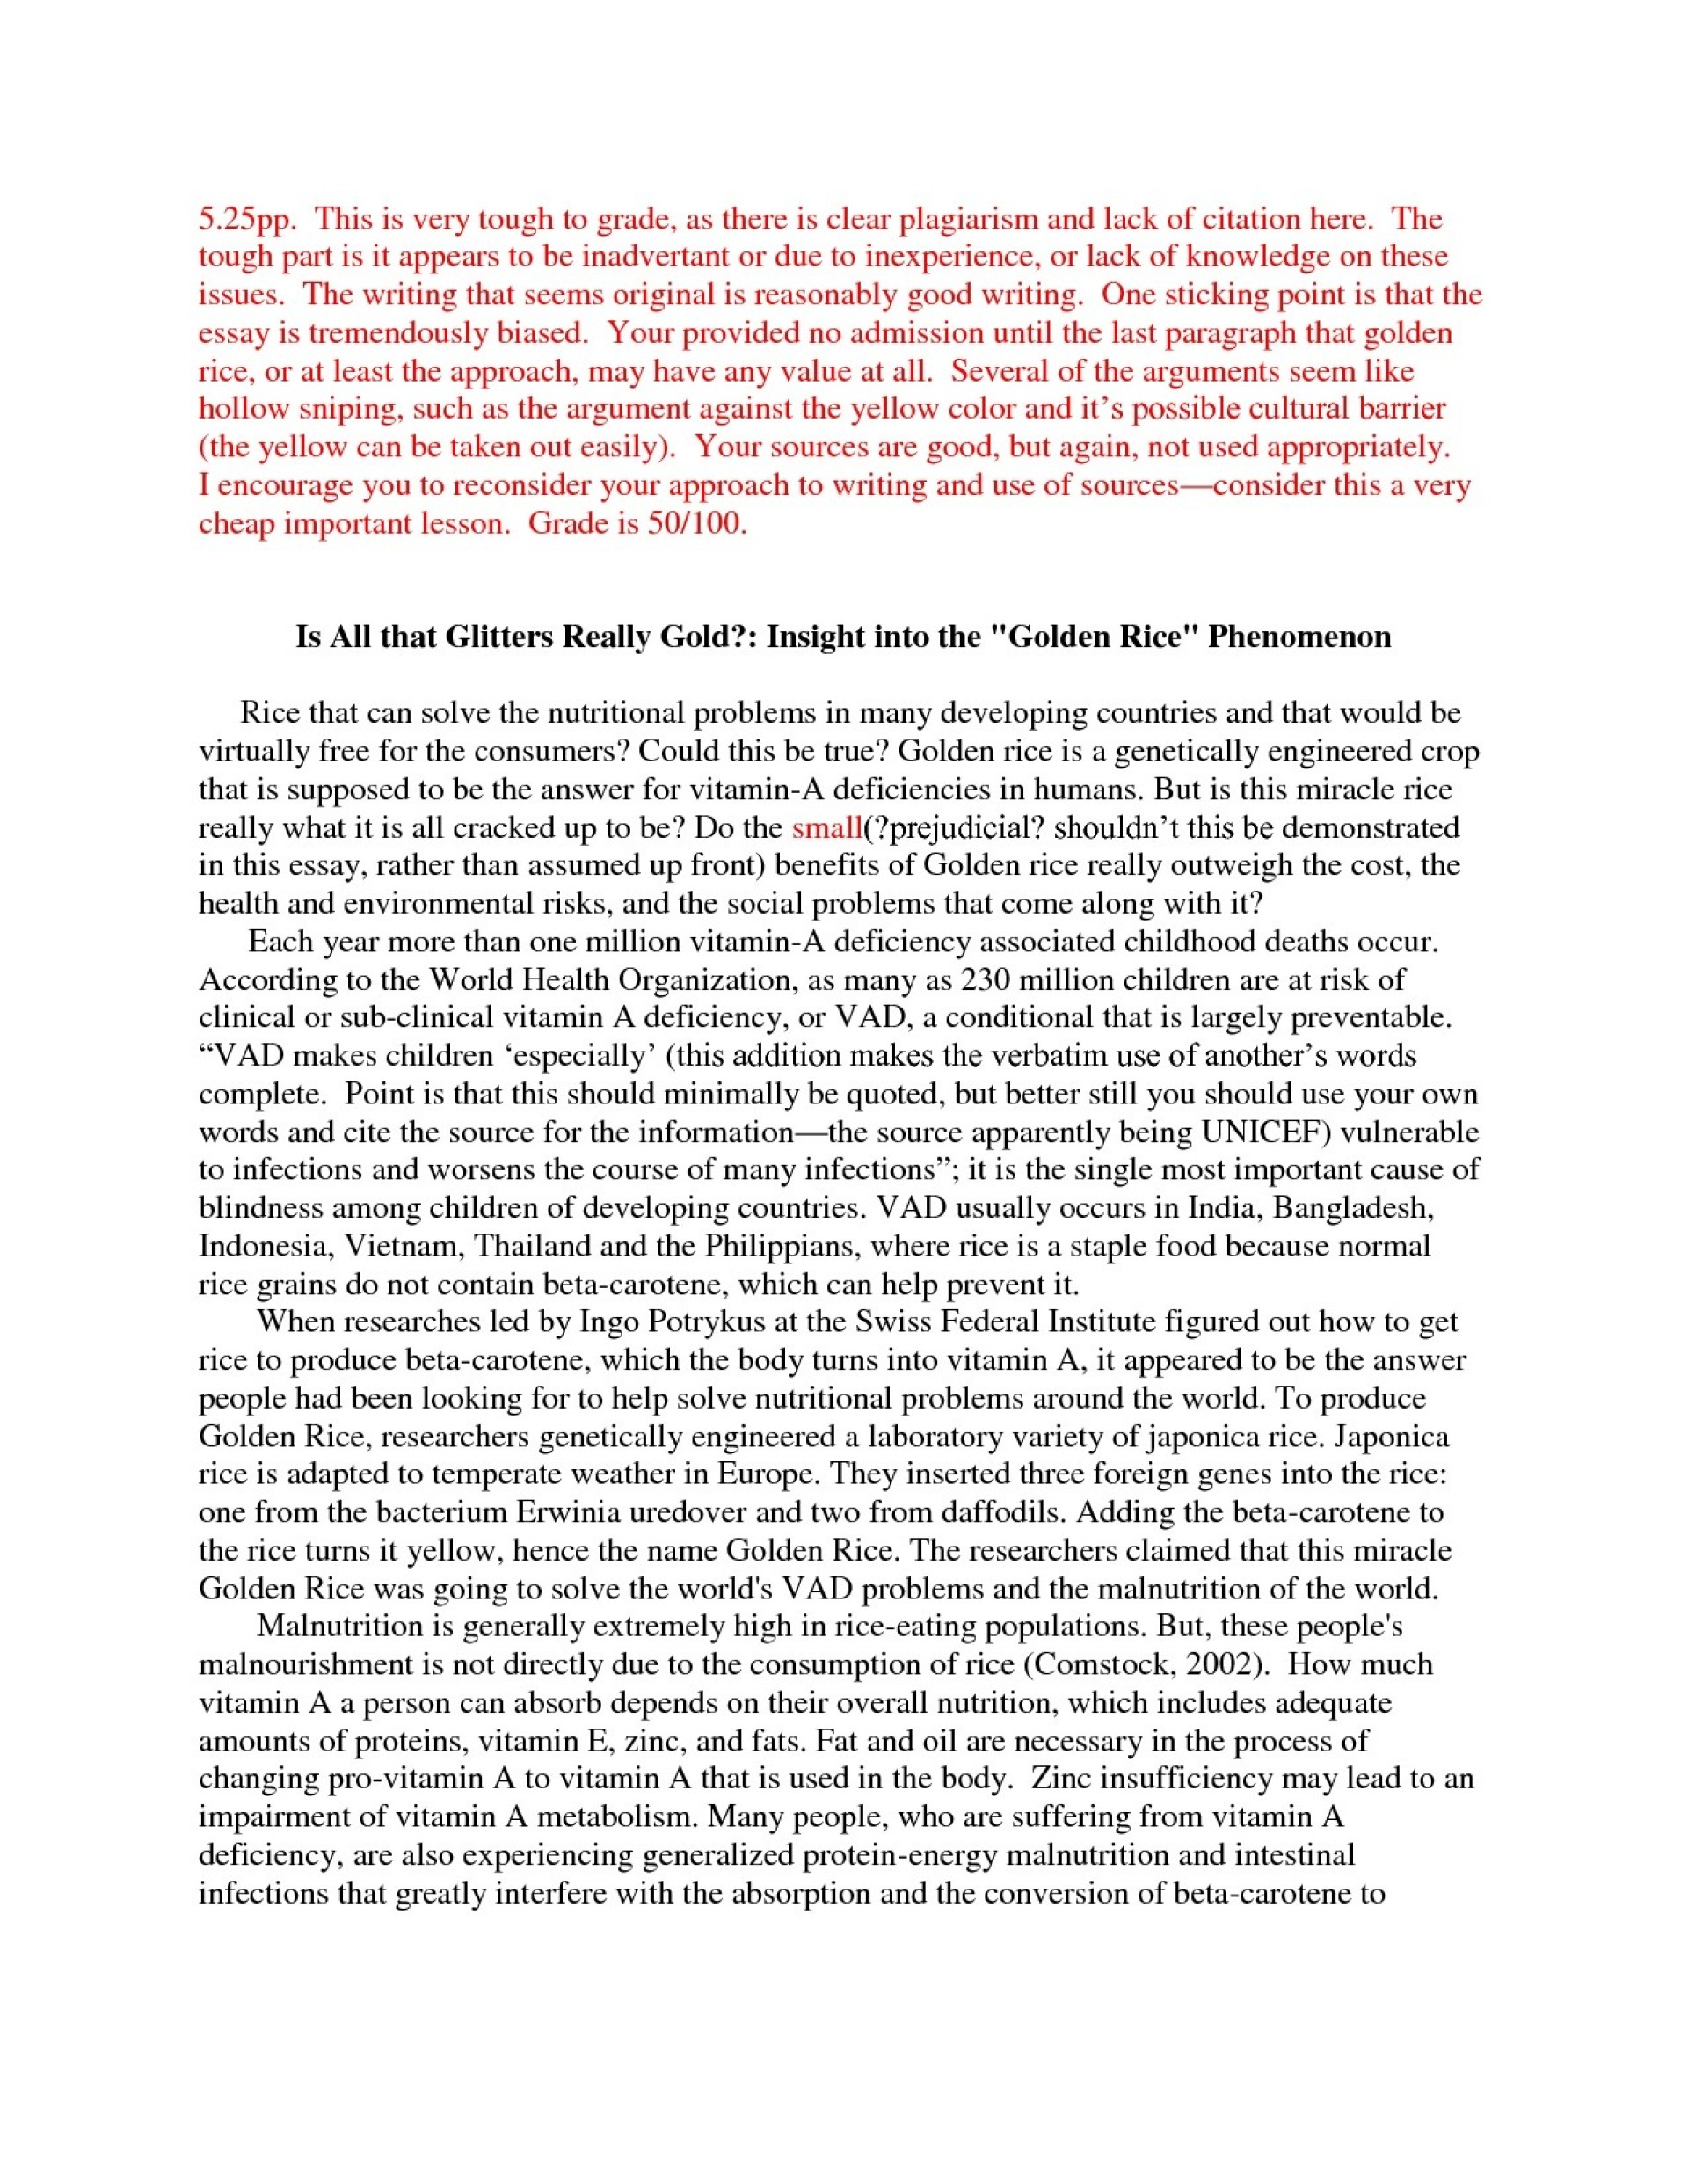 005 Worst College Essayss Selo Yogawithjo Co Of Essay Best Essays Prompts And Reddit 1920